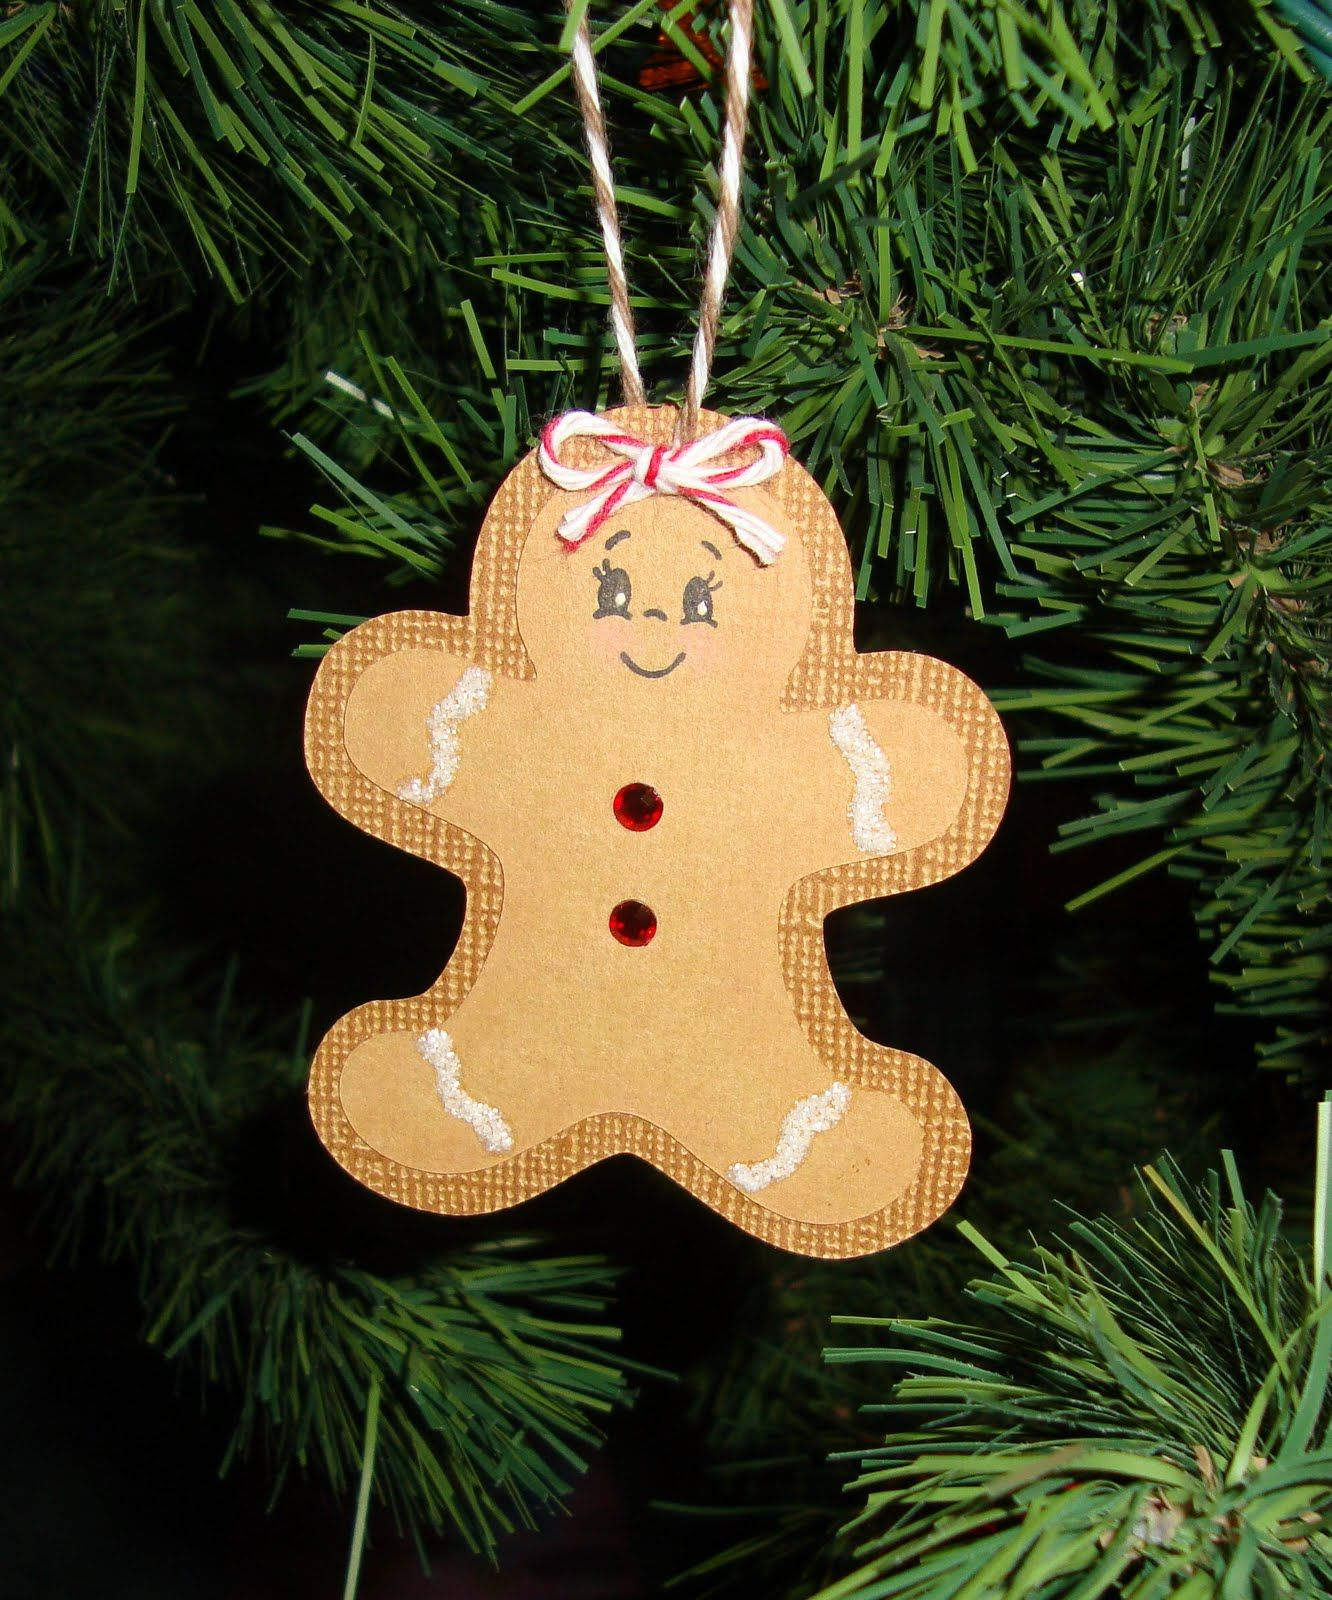 Gloras Crafts Gingerbread Candle And Ornament